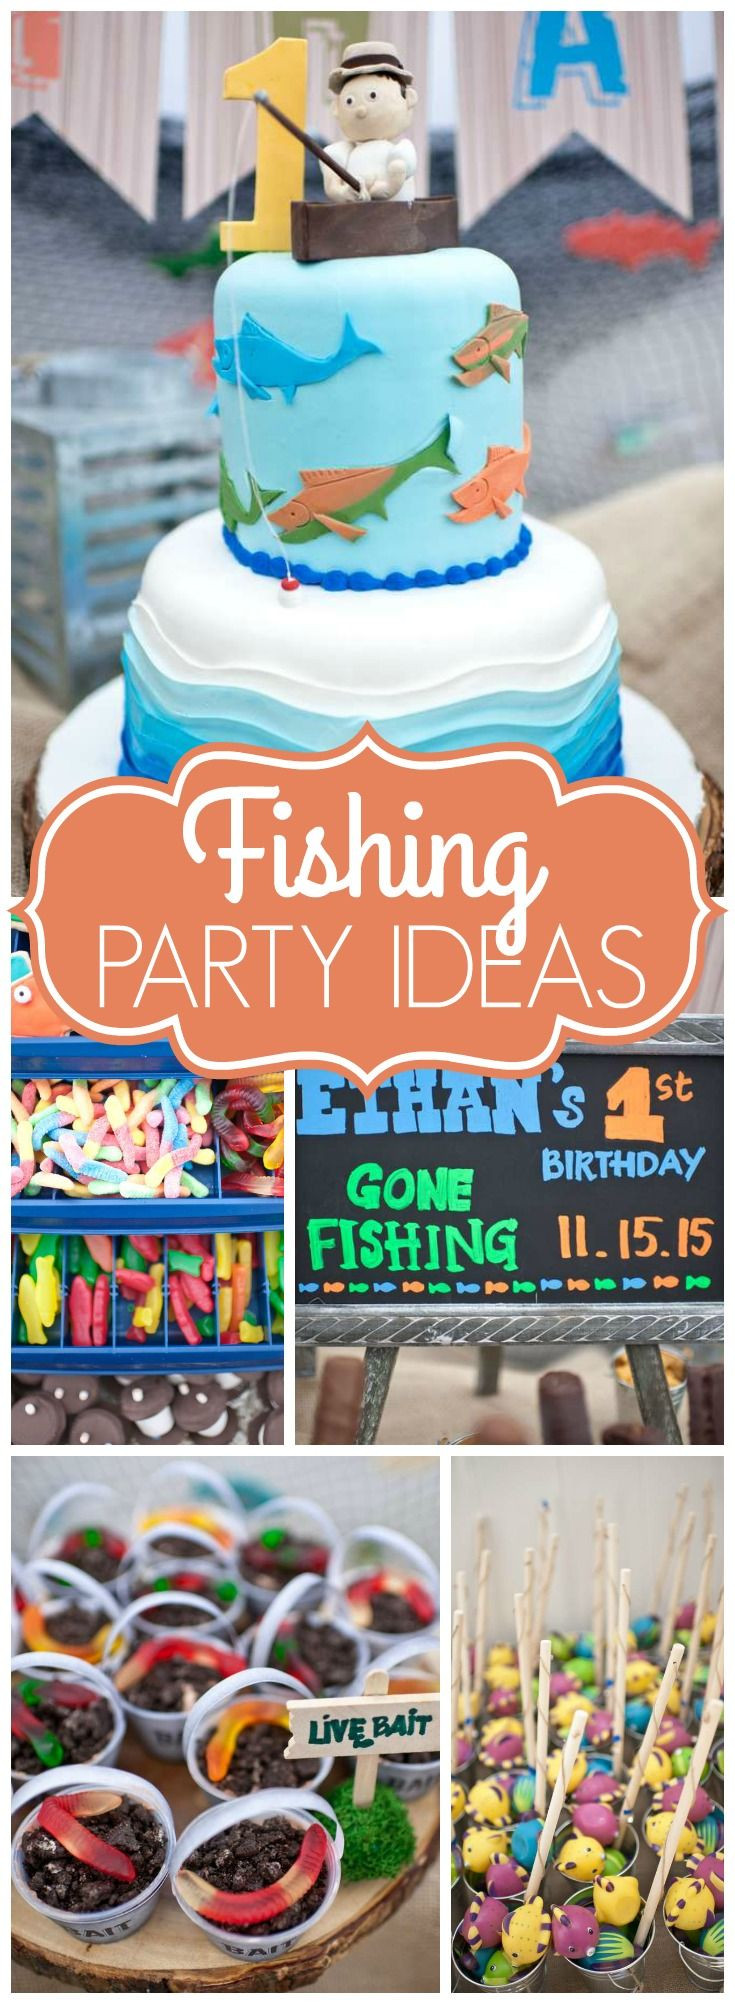 """Best ideas about First Birthday Boy Ideas . Save or Pin Gone Fishing Birthday """"Ethan s Gone Fishing 1st Birthday Now."""